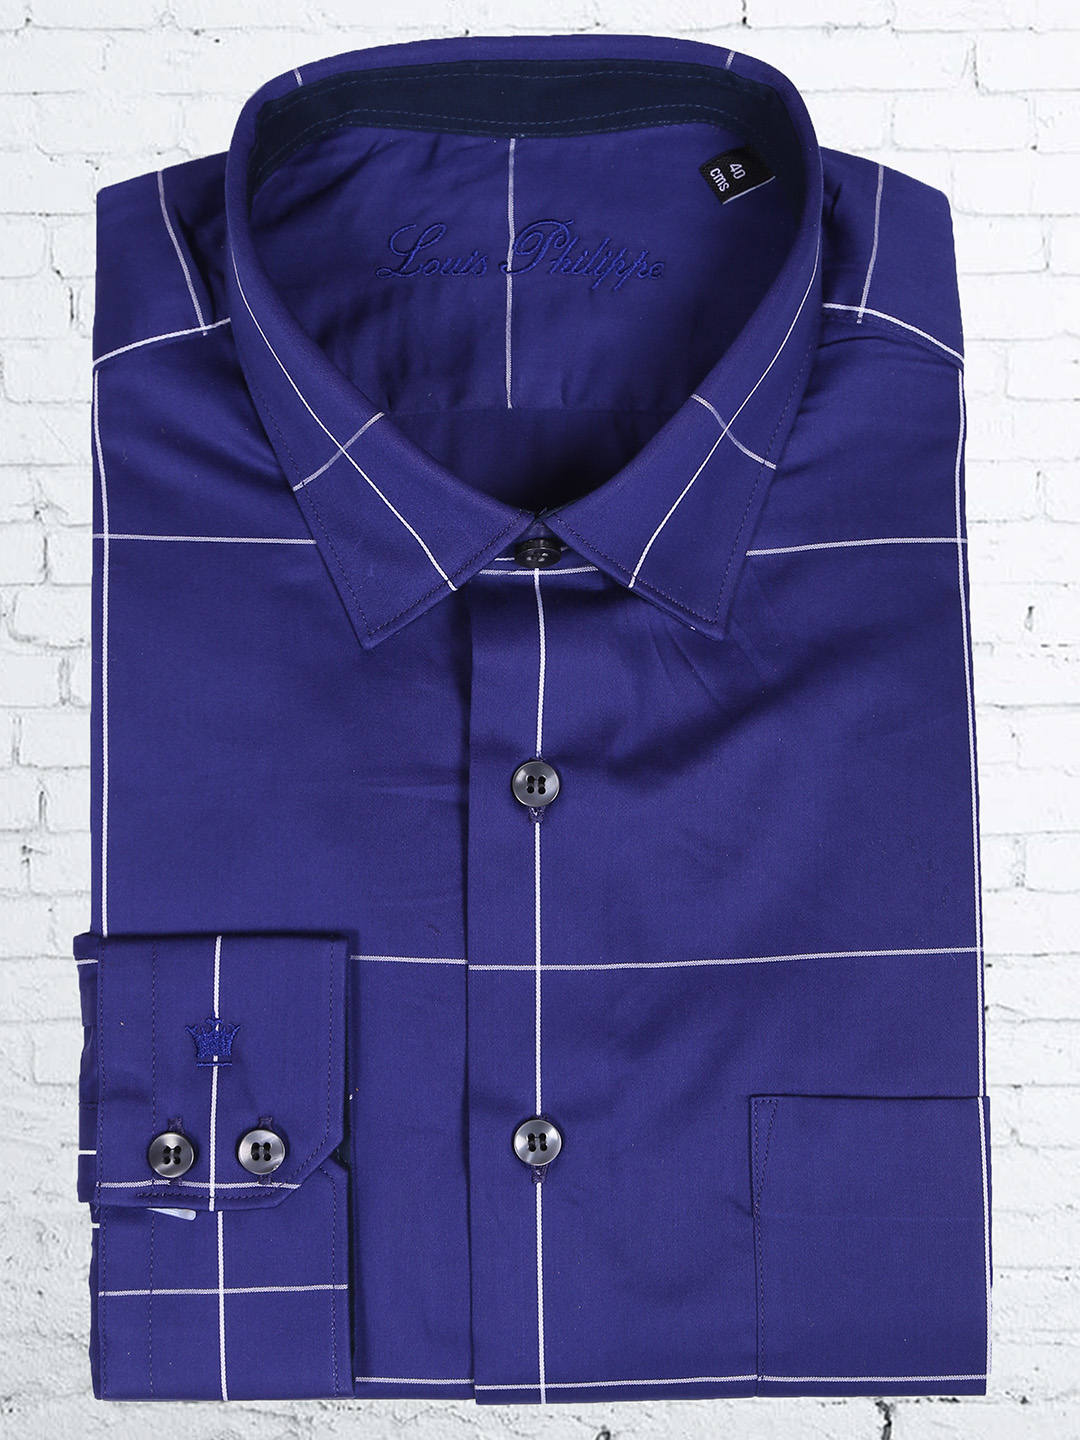 Louis philippe cotton navy blue color check lines shirt for Navy blue color shirt